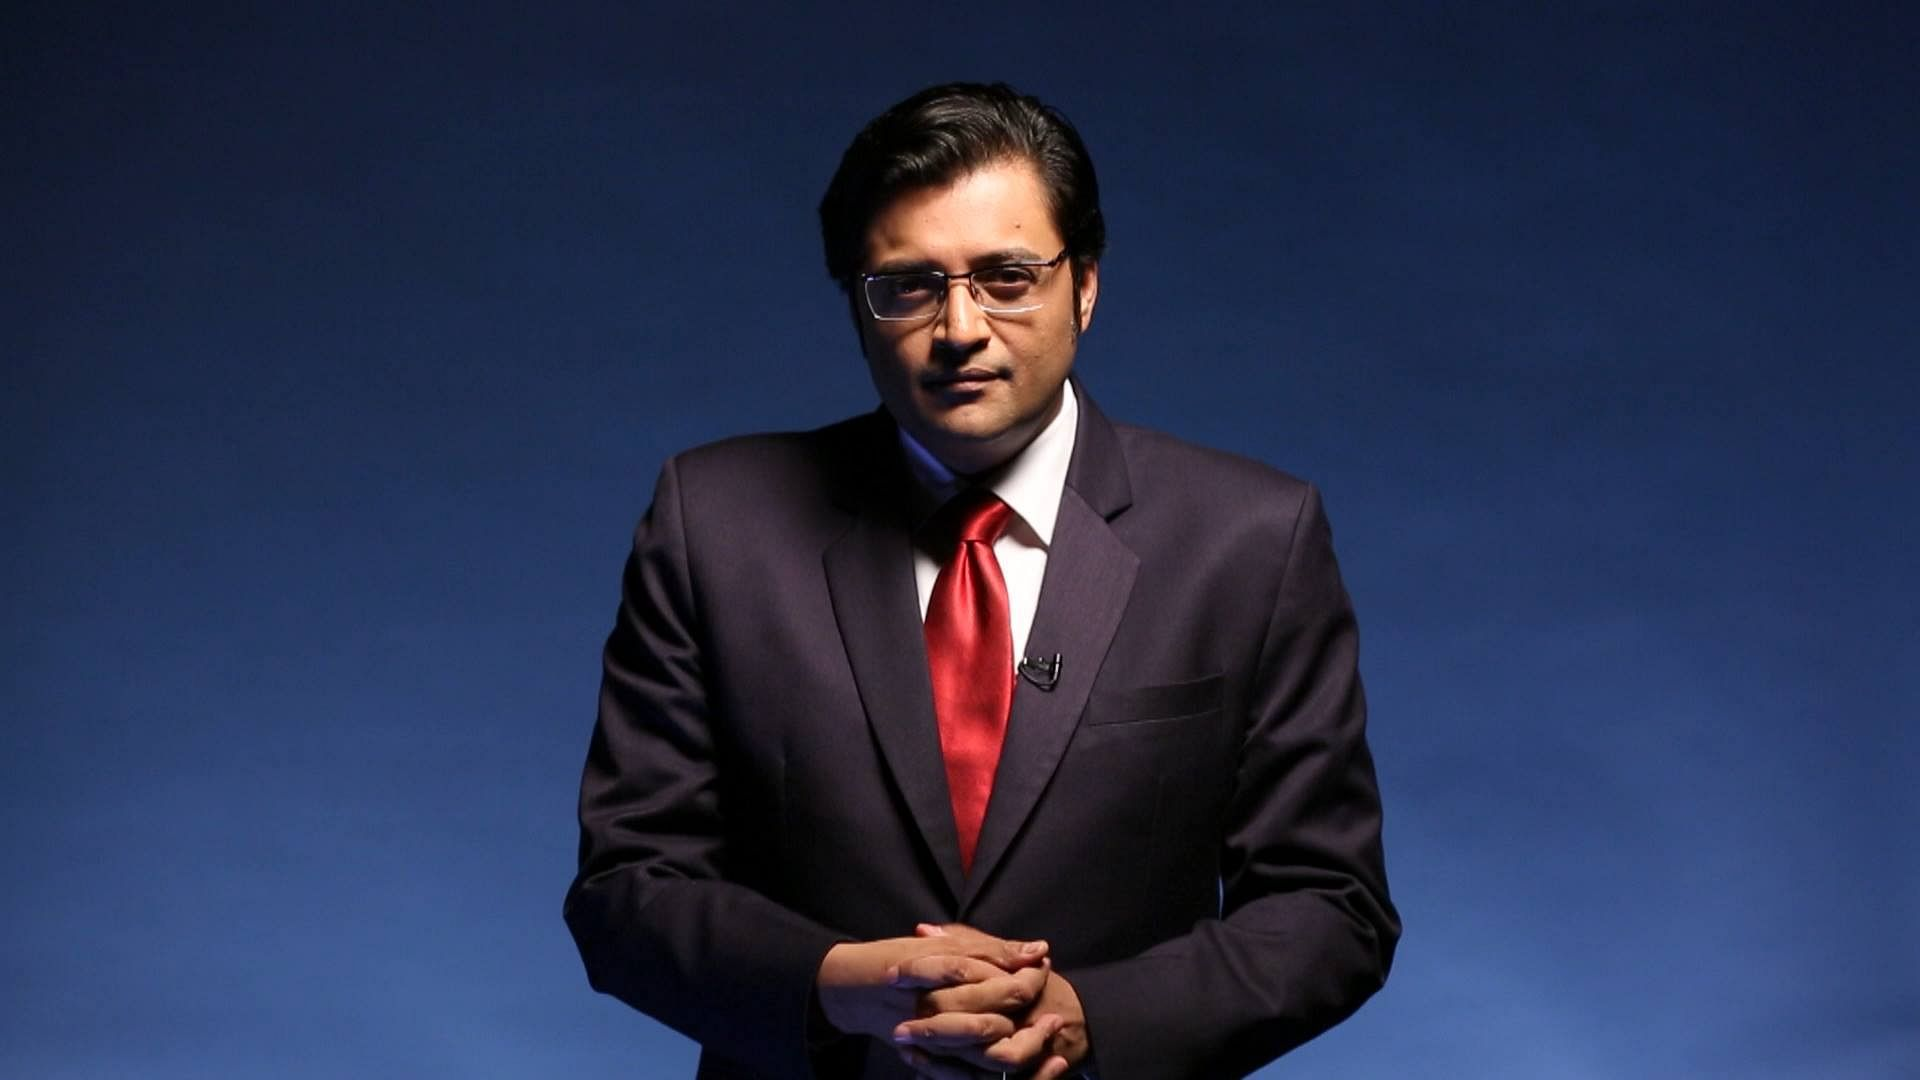 Arnab Goswami can chill. Congress won't come after him because of 'Mahatma' syndrome